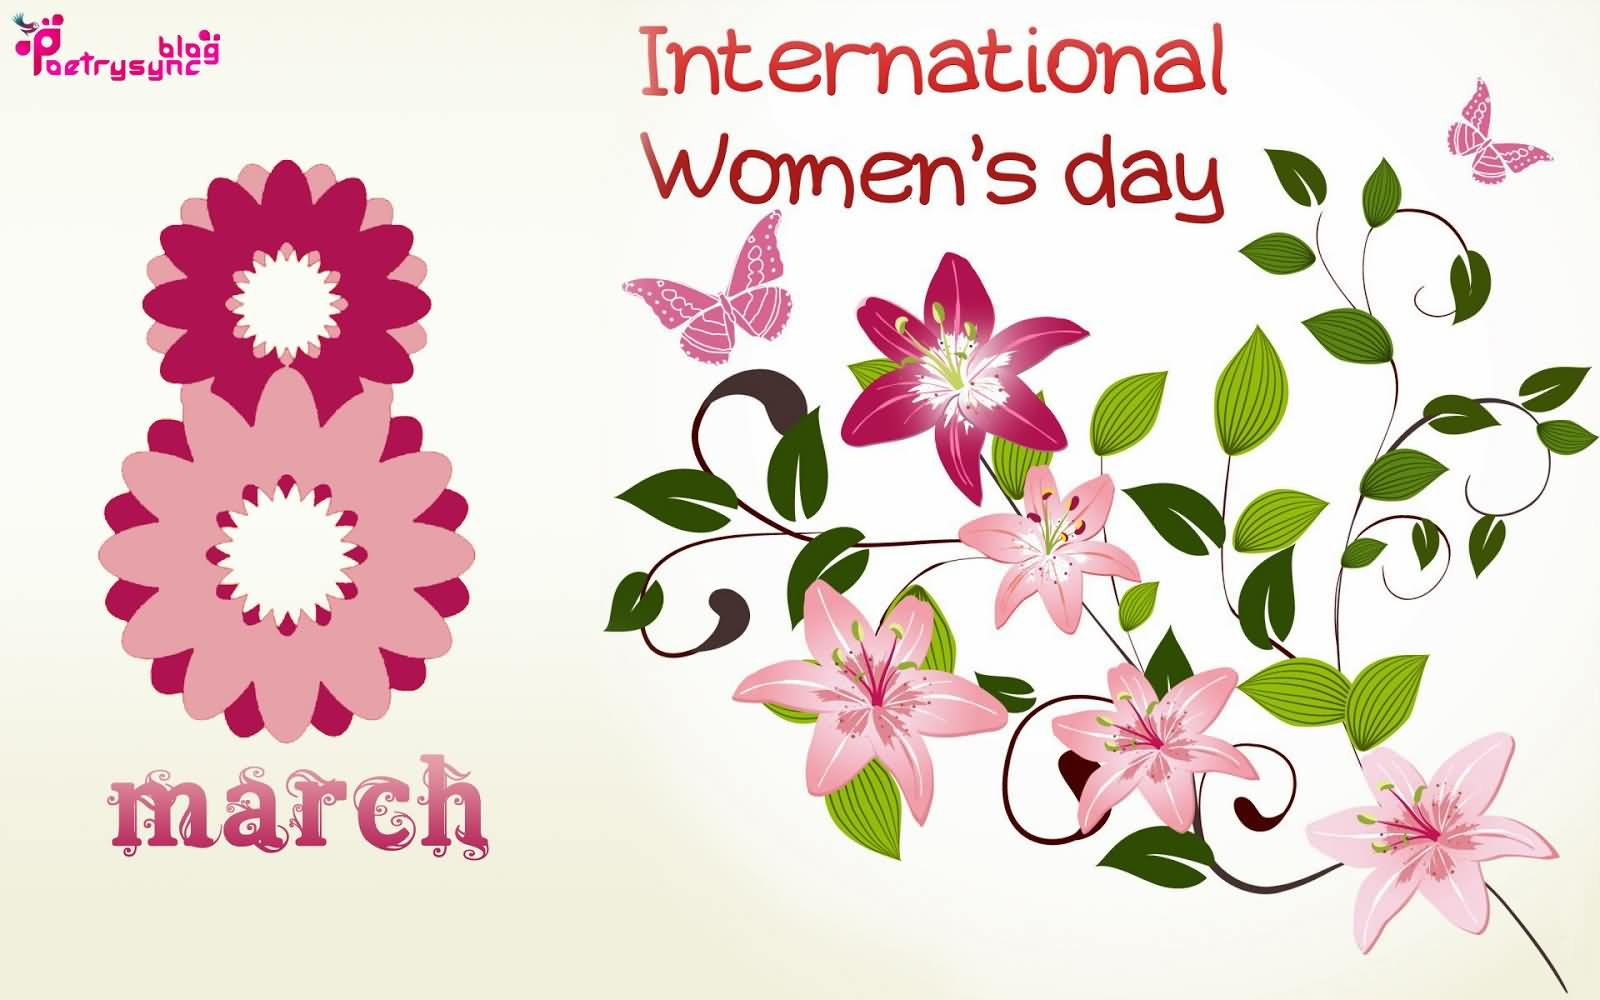 International Women's Day Wishes Greetings Image